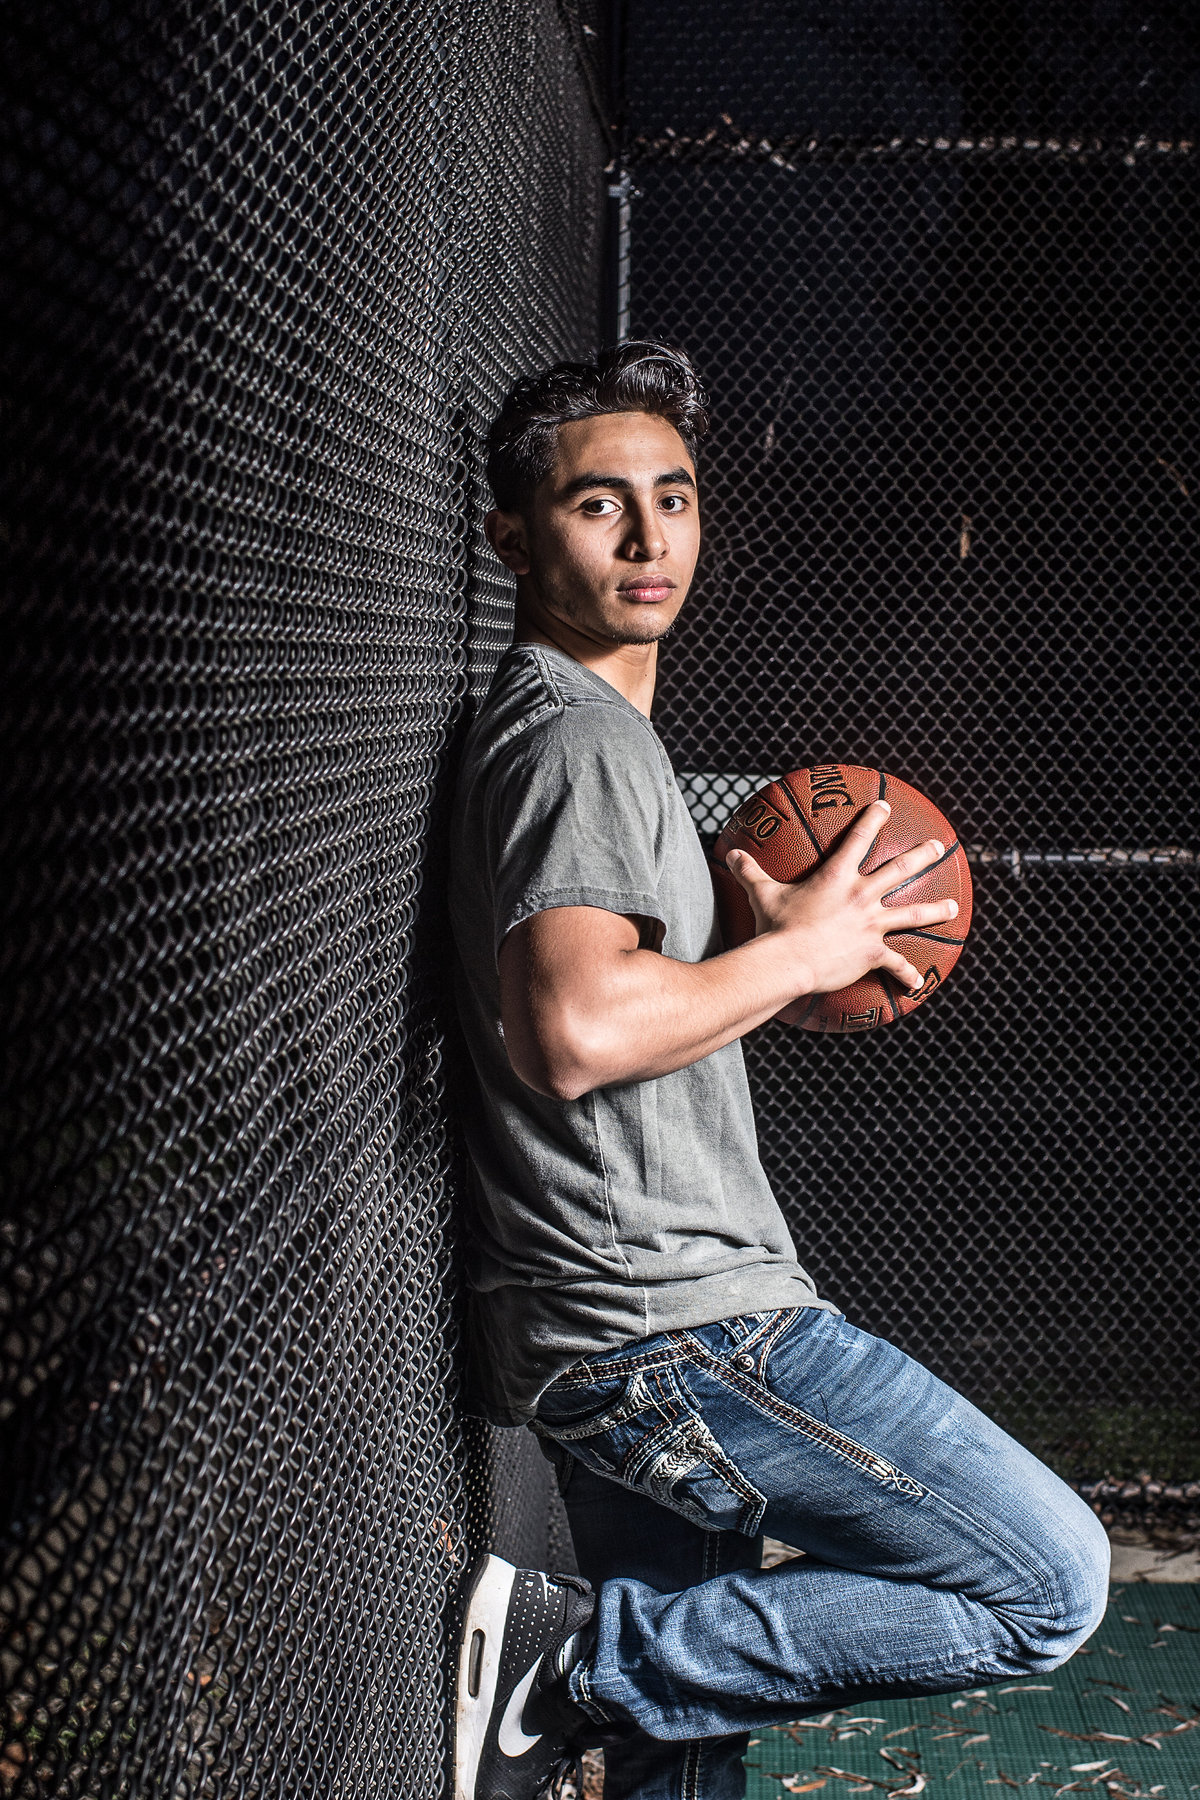 Redway-California-senior-portrait-photographer-Parky's-Pics-Photography-Humboldt-County-basketball-nighhttime2.jpg